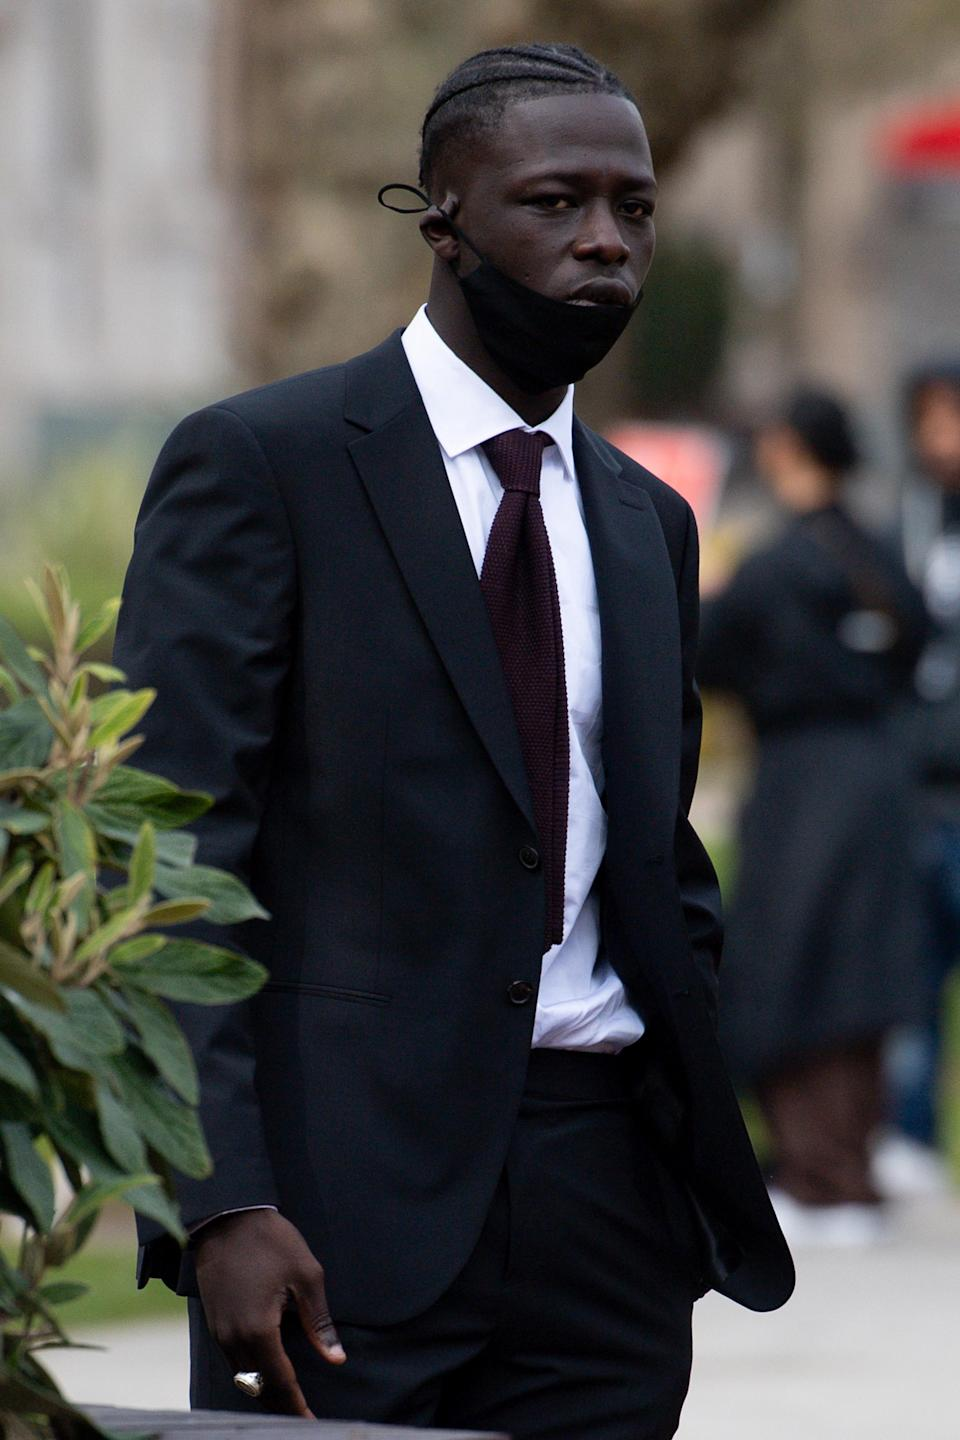 Pa Salieu arriving at court in Coventry. (Credit Jacob King/PA)